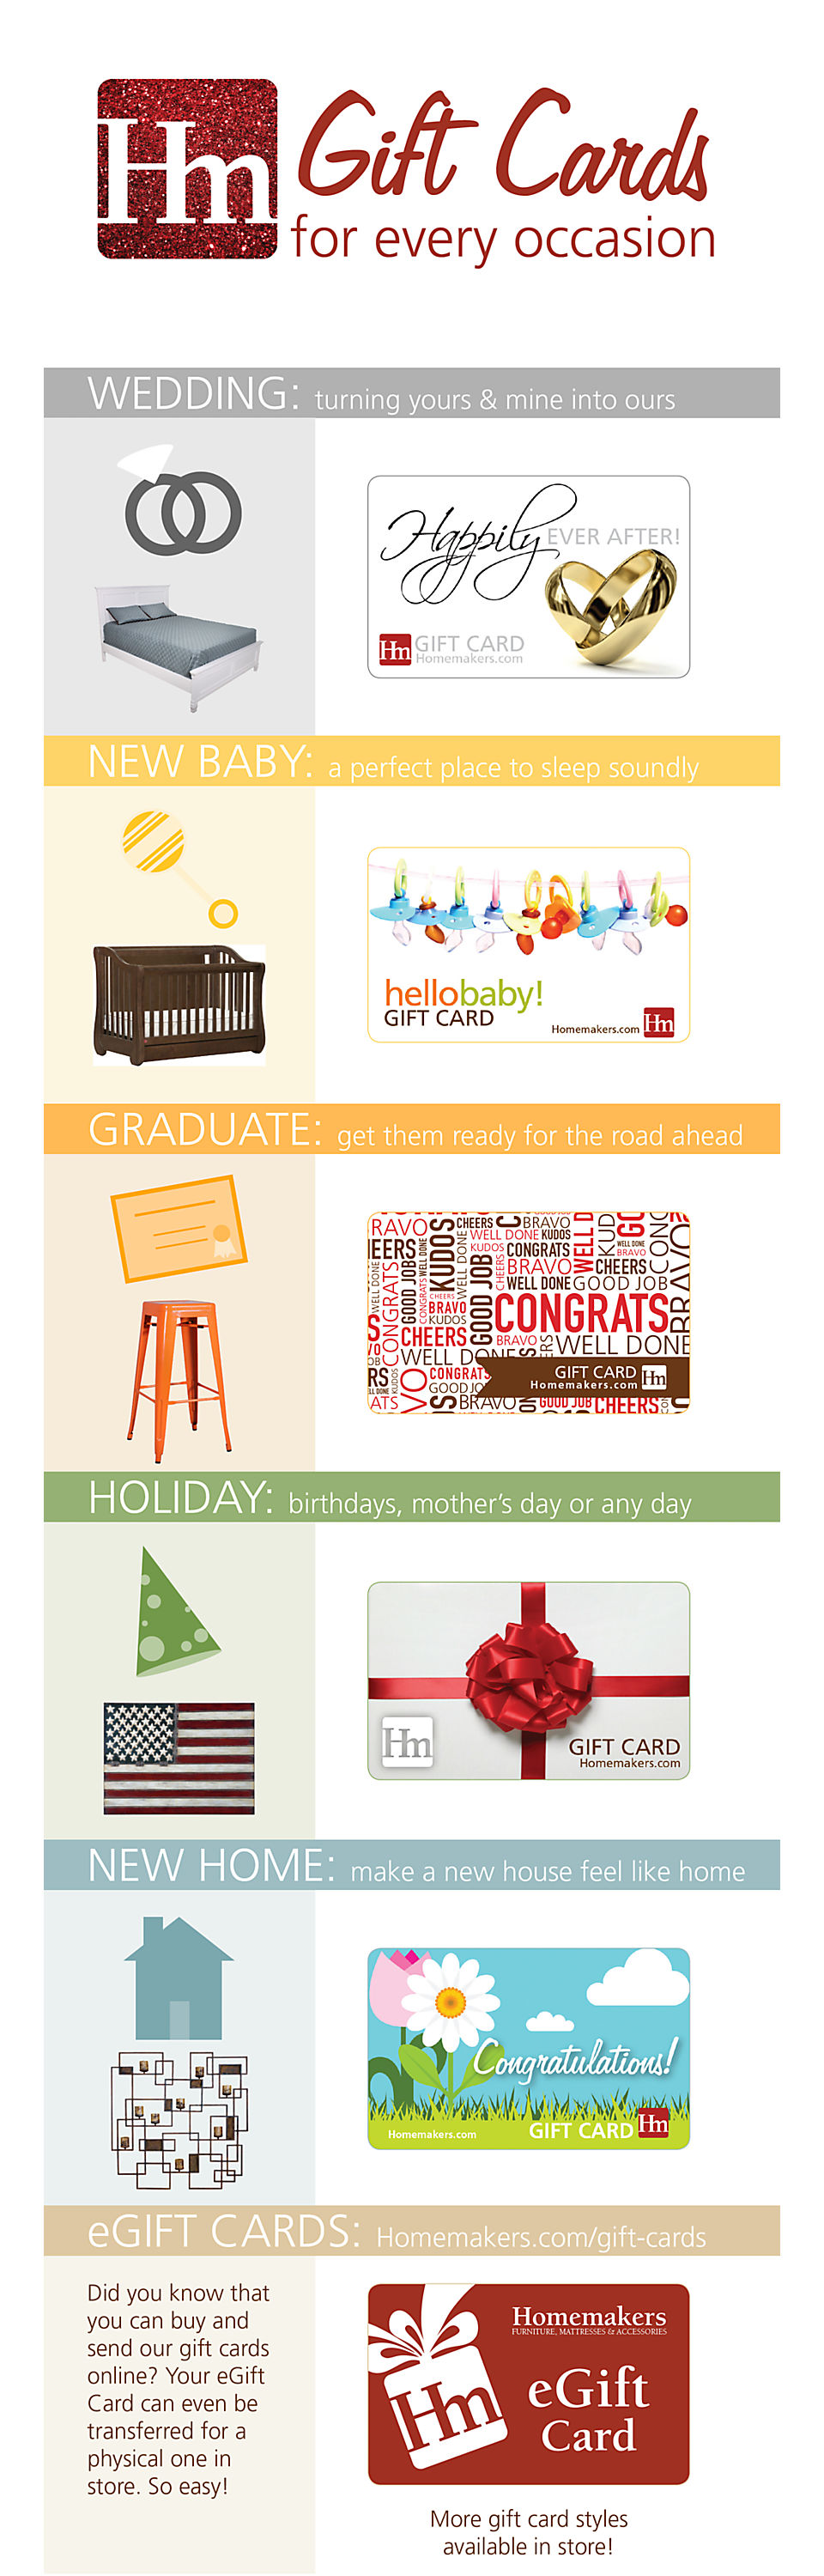 Homemakers has a gift card for every ocassion!